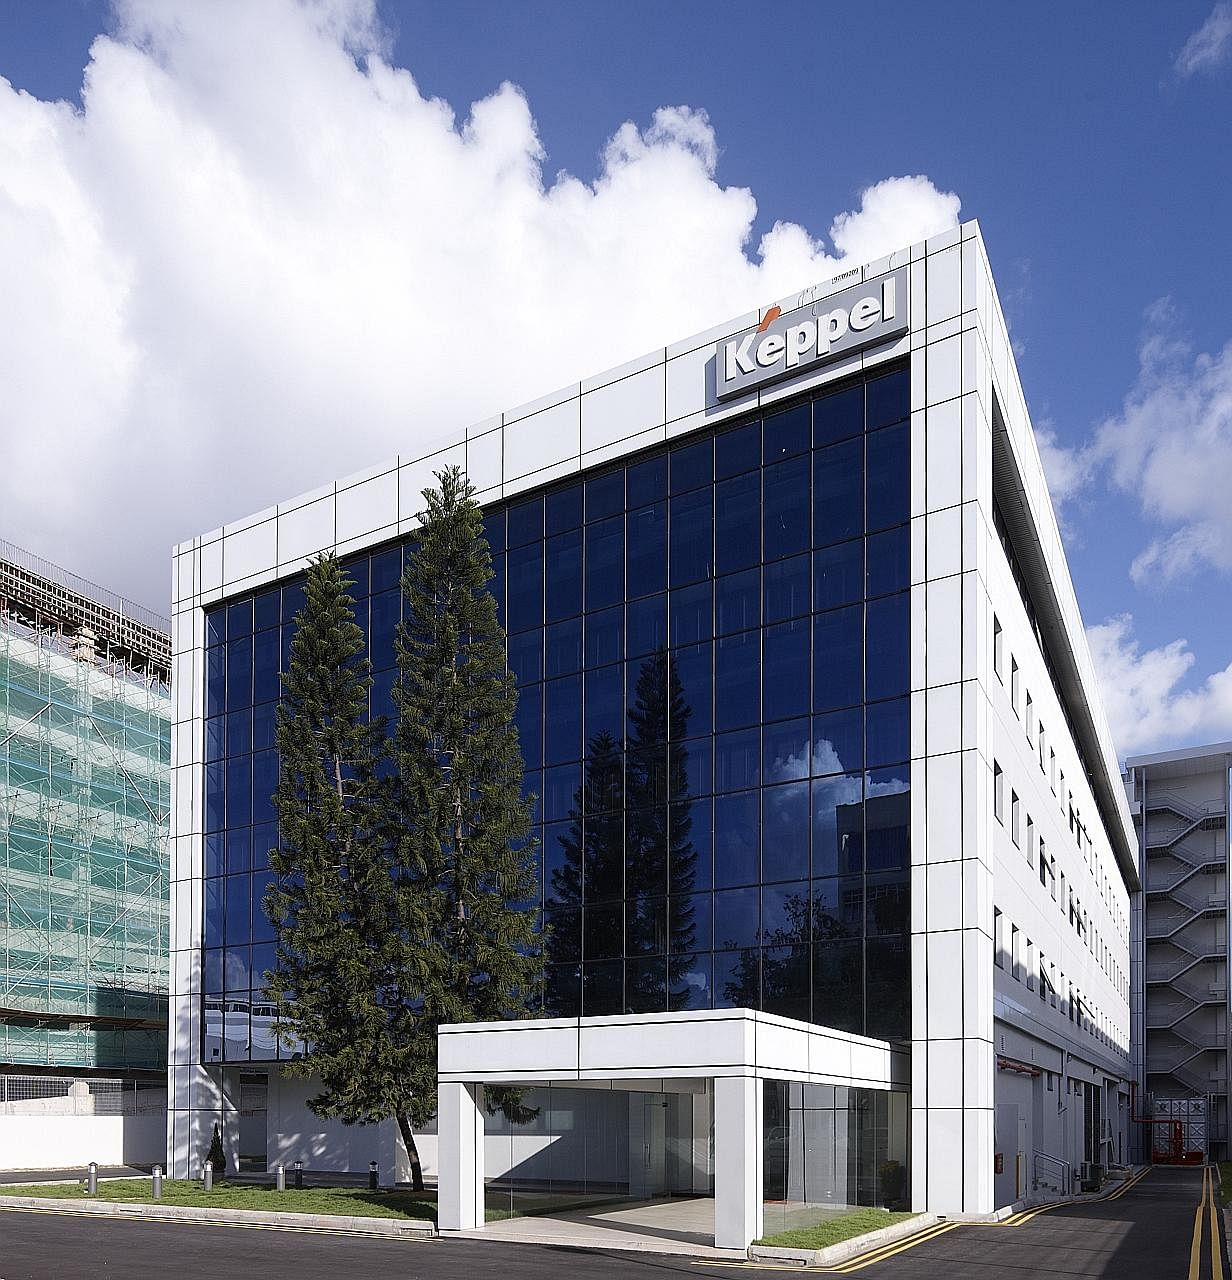 A Singapore data centre in Keppel DC Reit's portfolio. Distributable income to unitholders rose 20.2 per cent to $20.2 million, on the back of acquisitions of the Milan, Cardiff and B10 data centres (DC) and the 90 per cent interest in Keppel DC Sing